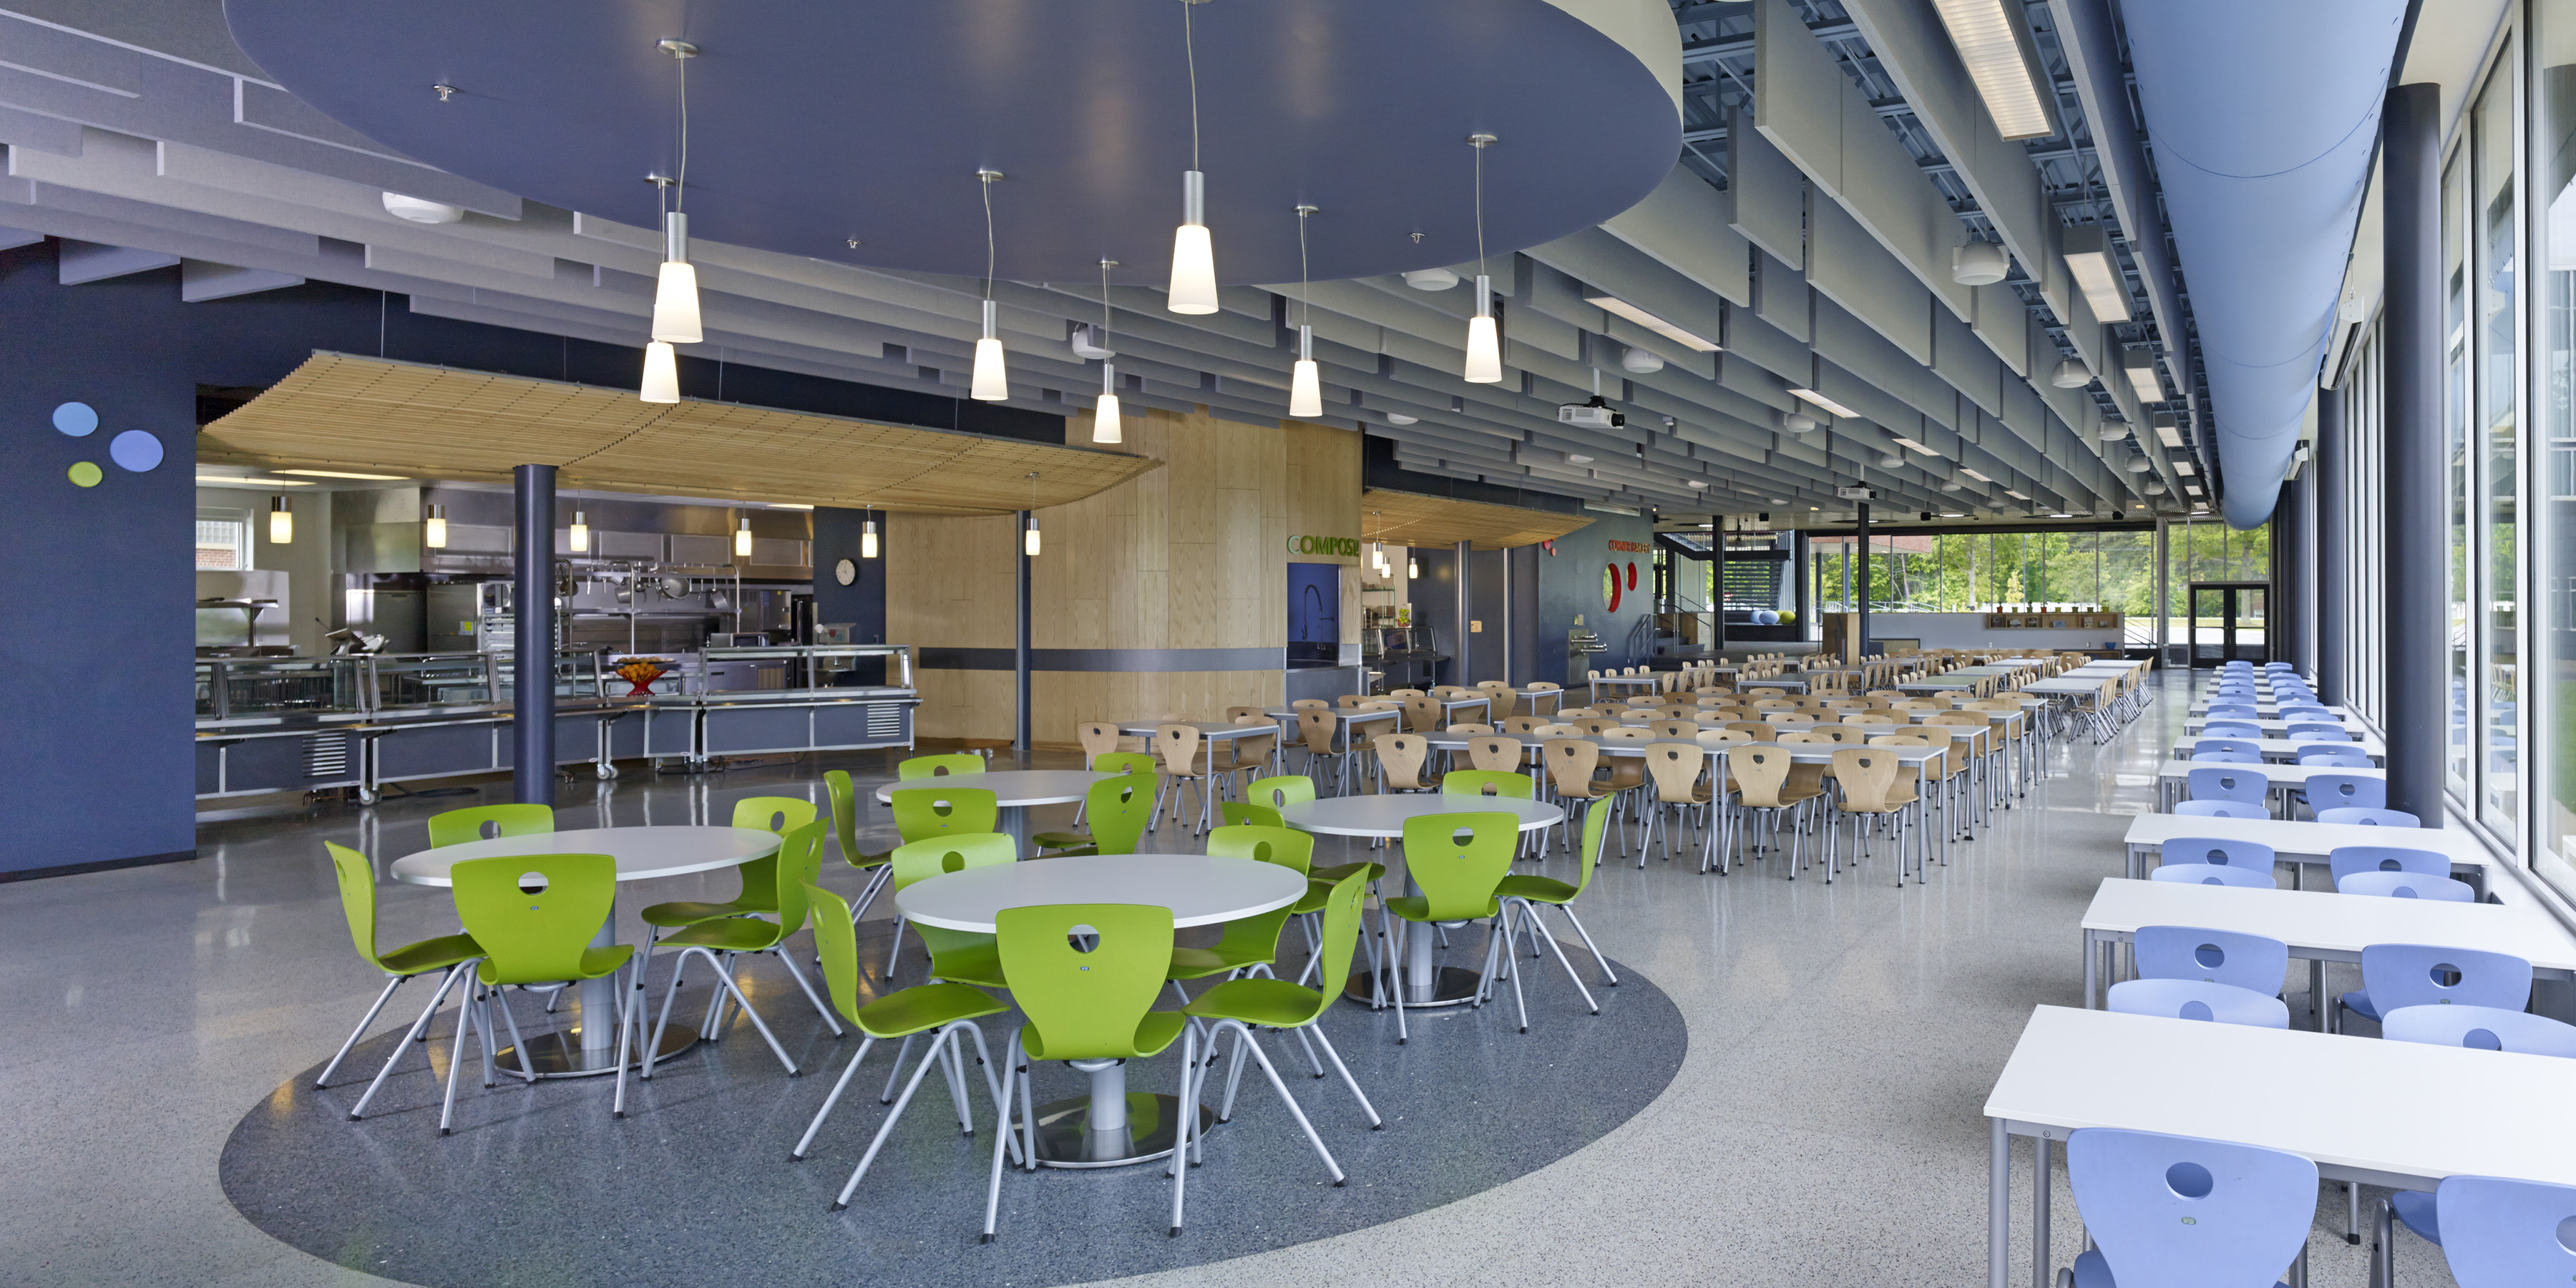 concept dallas best awesome school top modern schools for interior design impressive